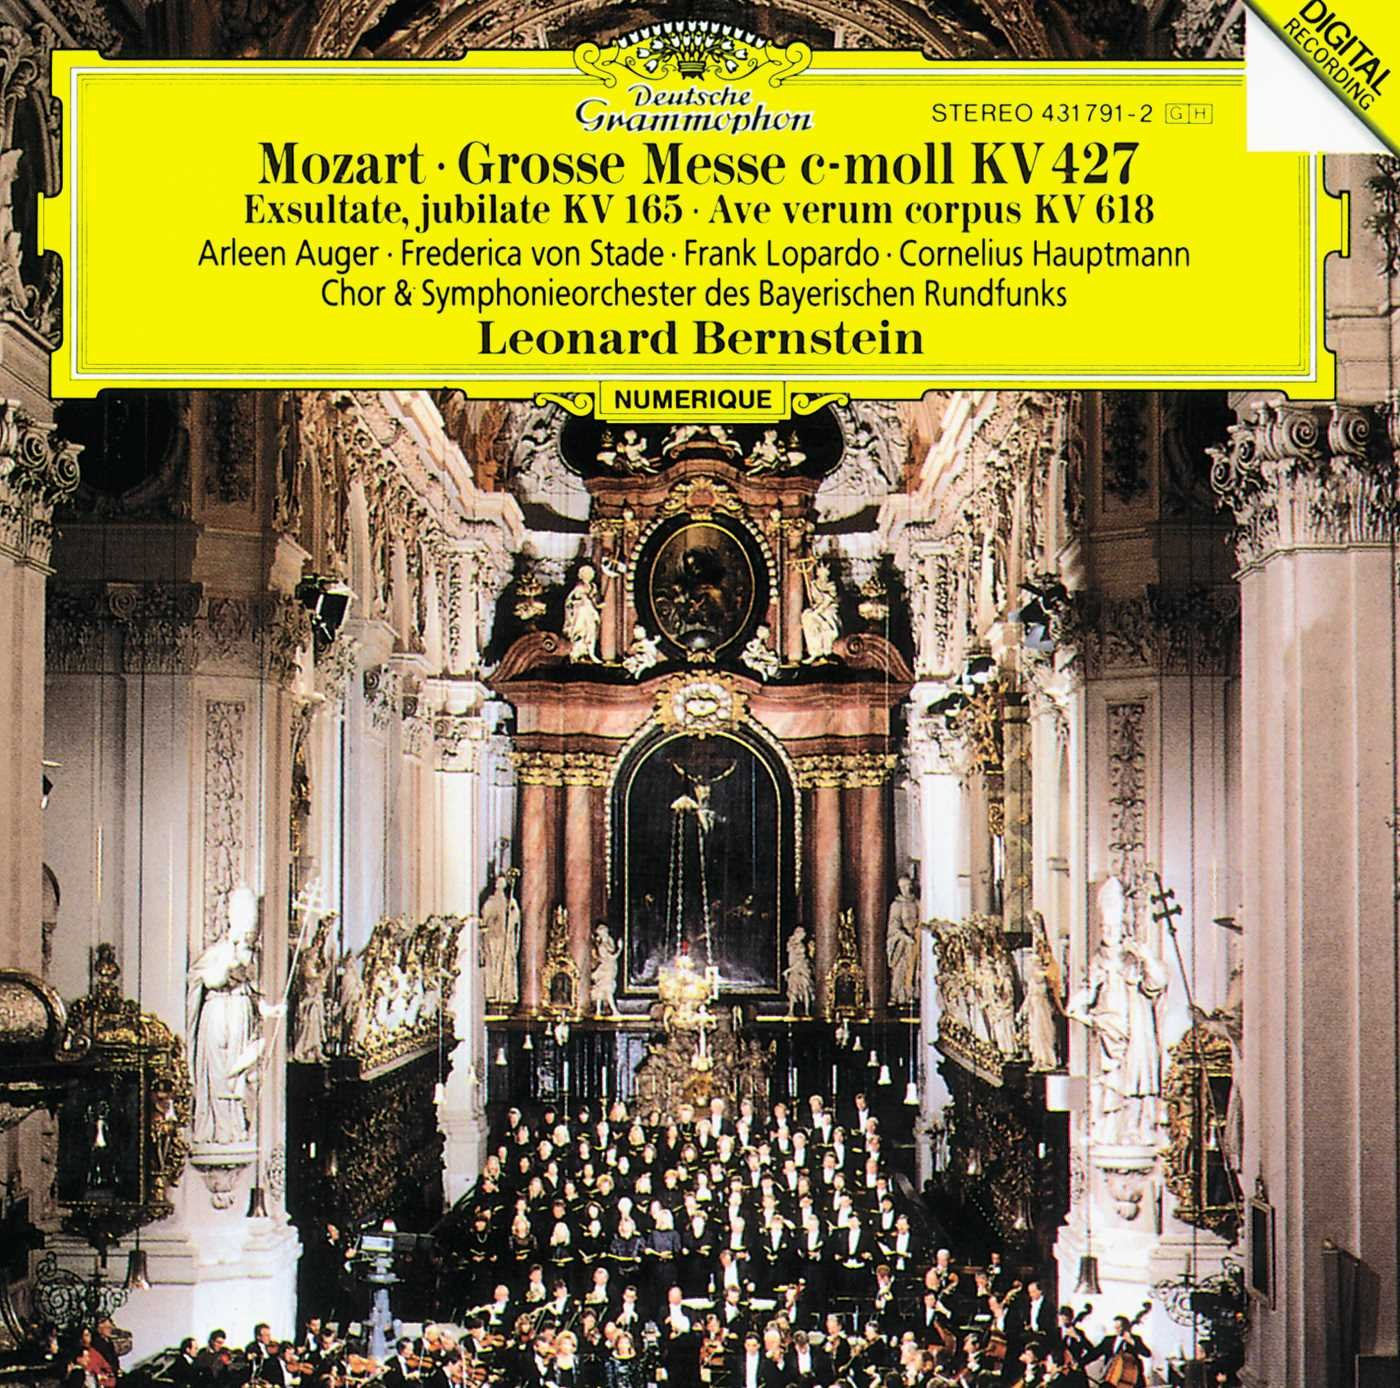 Mozart: Great Mass in C minor, K. 427; Exultate, jubilate, K. 165; Ave verum corpus, K. 618 by CD